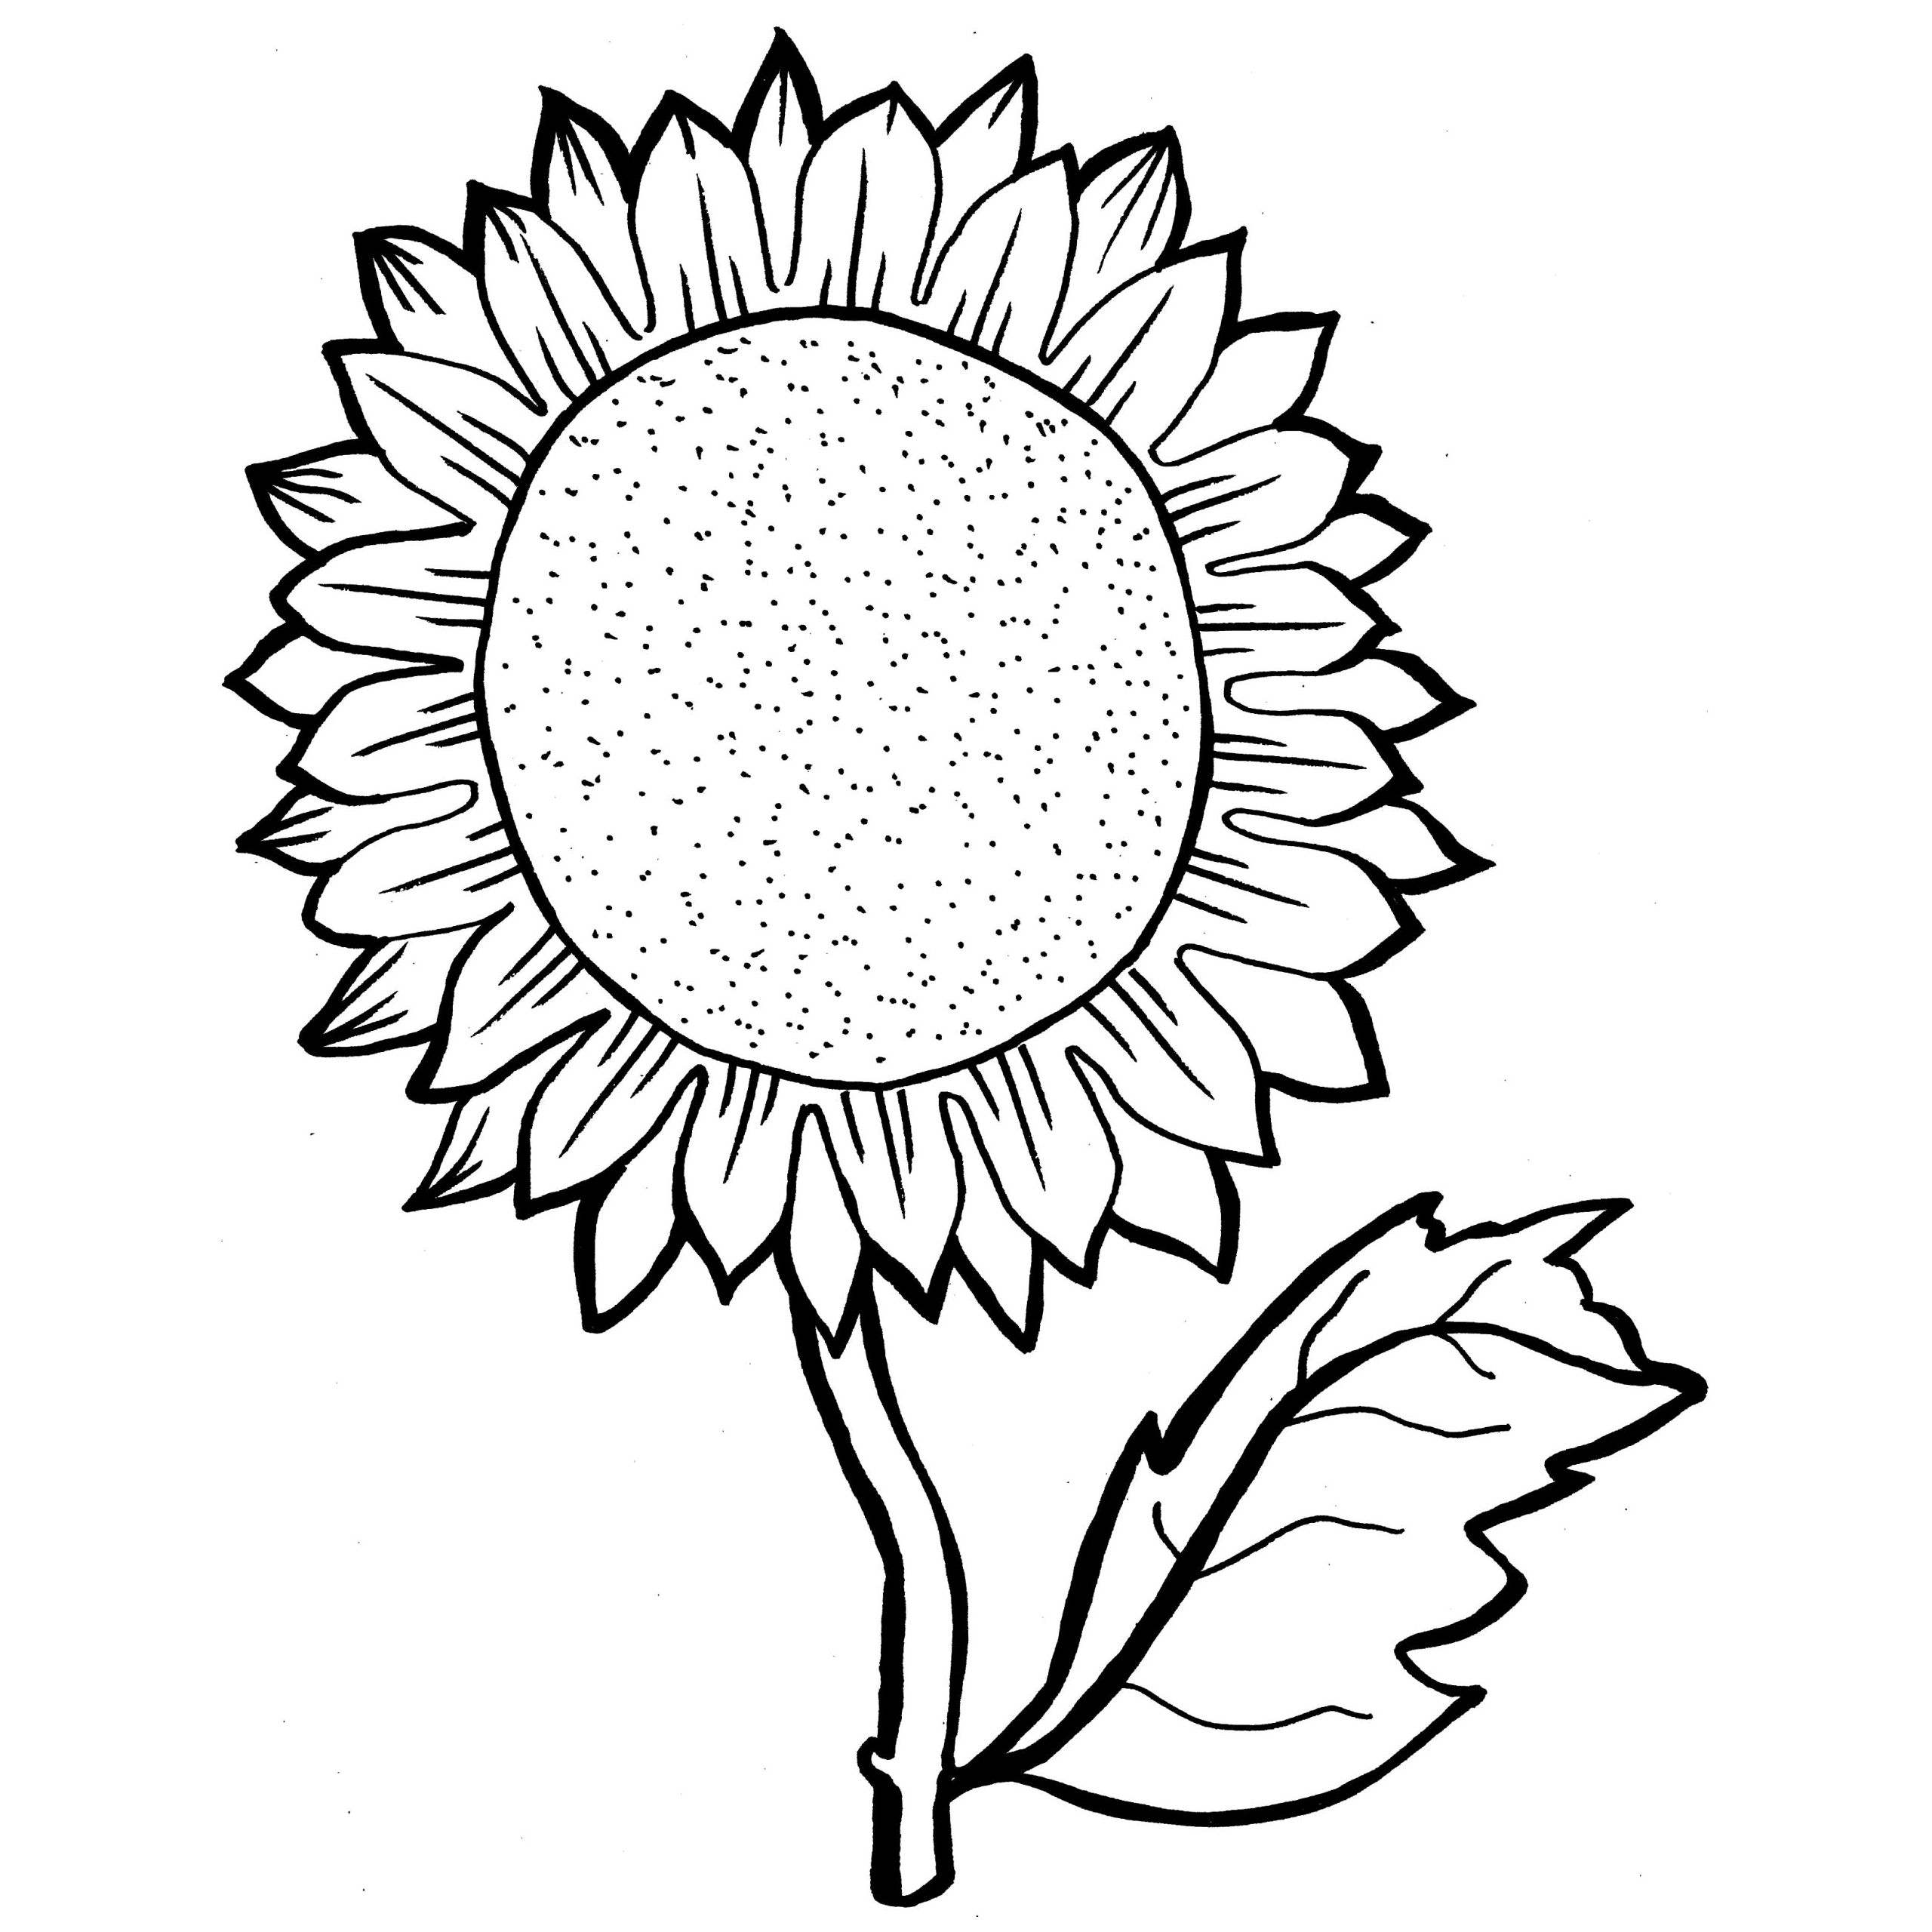 coloring sunflower printable sunflower coloring page free printable coloring pages sunflower printable coloring